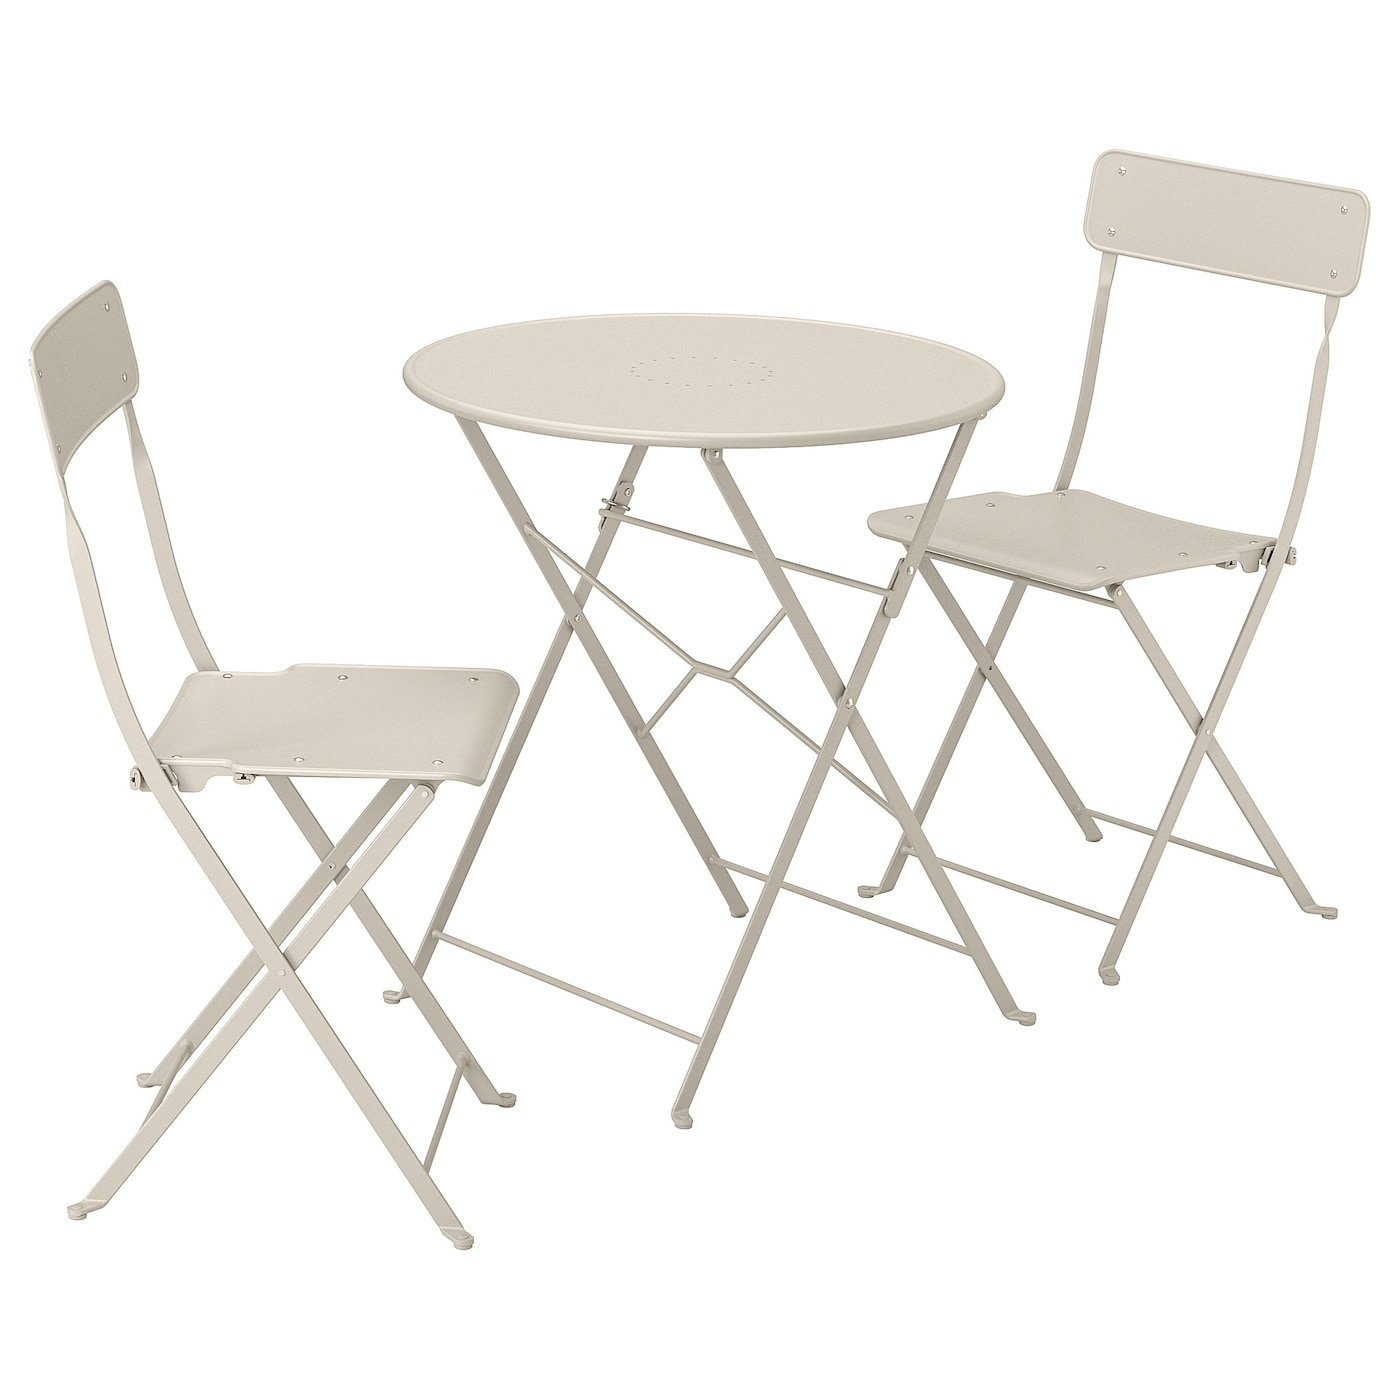 Saltholmen Table And 2 Folding Chairs